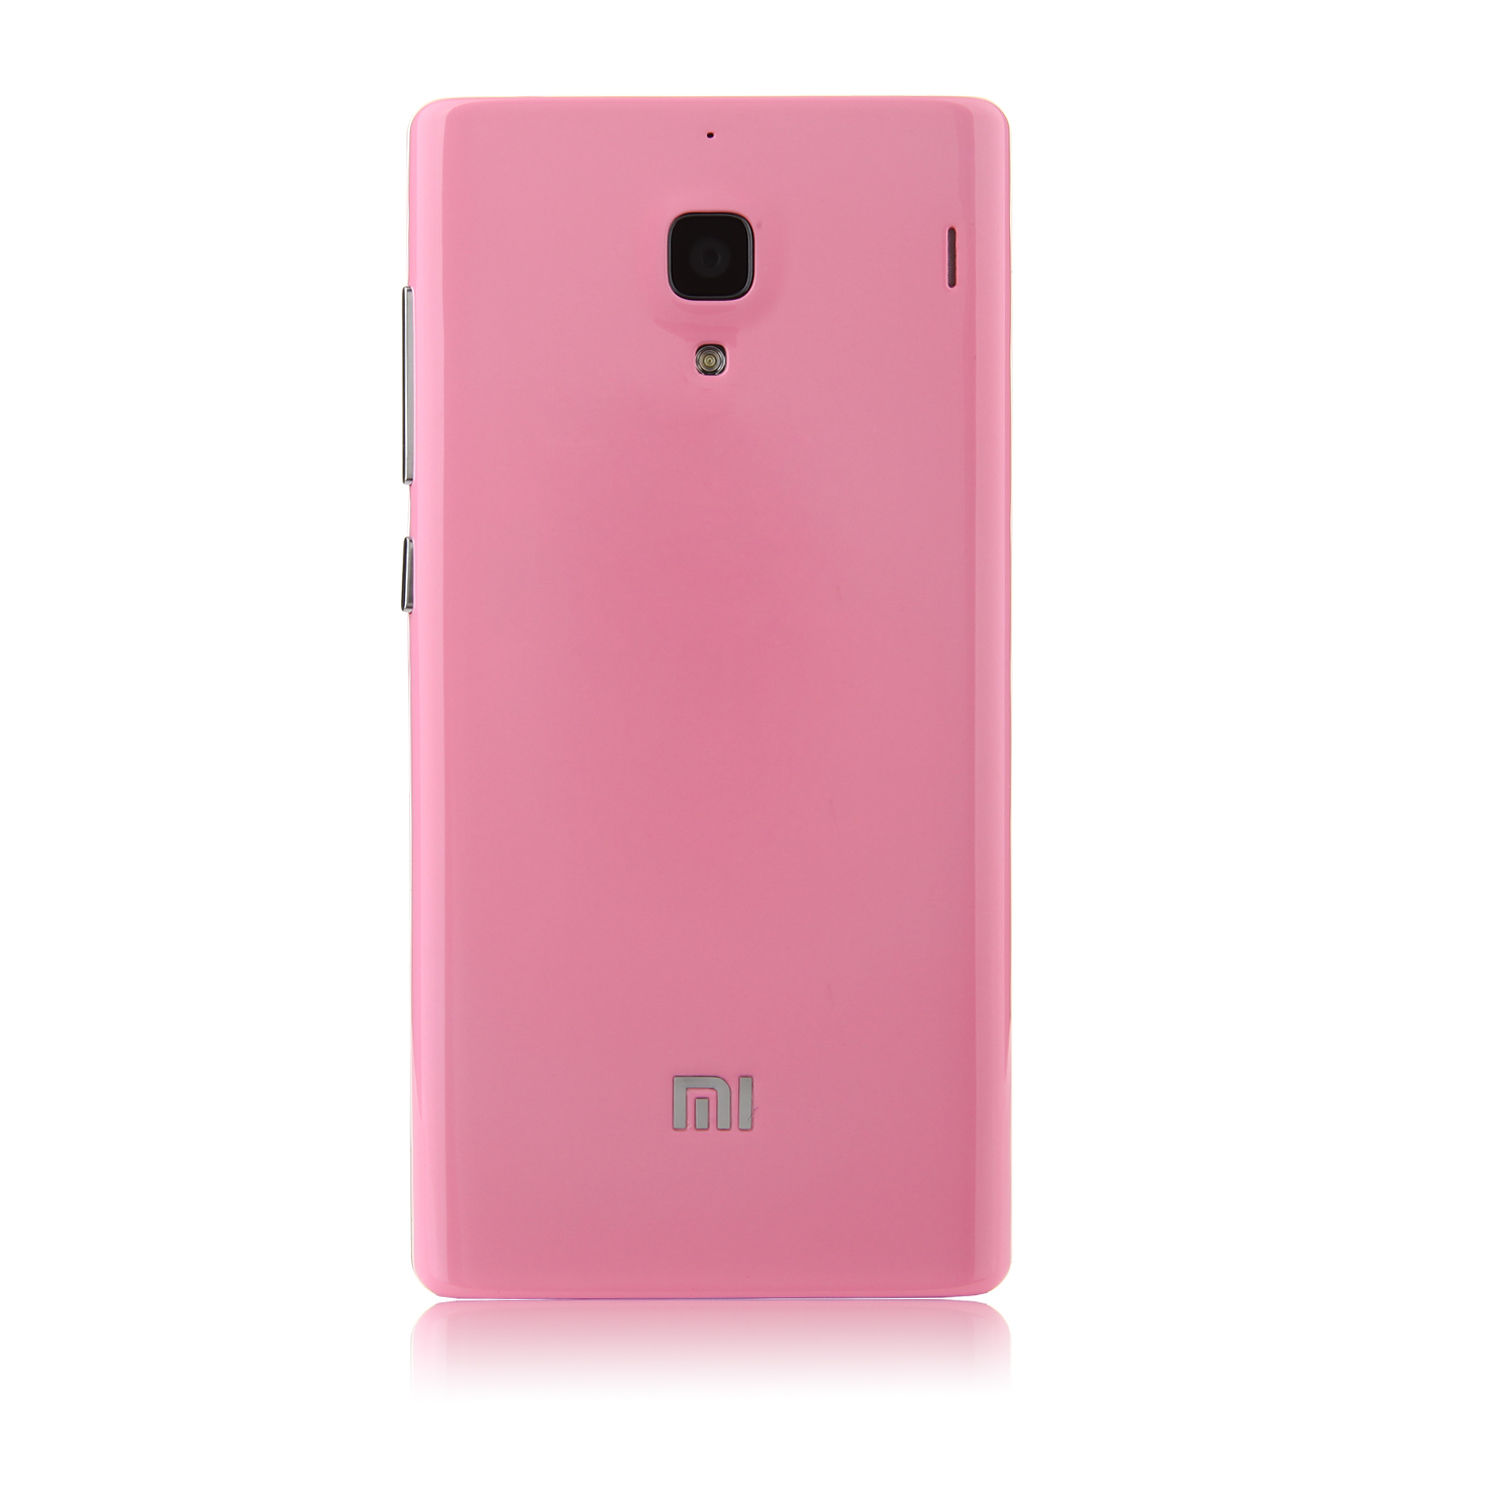 Replacement Battery Cover Back Case for XIAOMI Redmi 1S Smartphone Pink